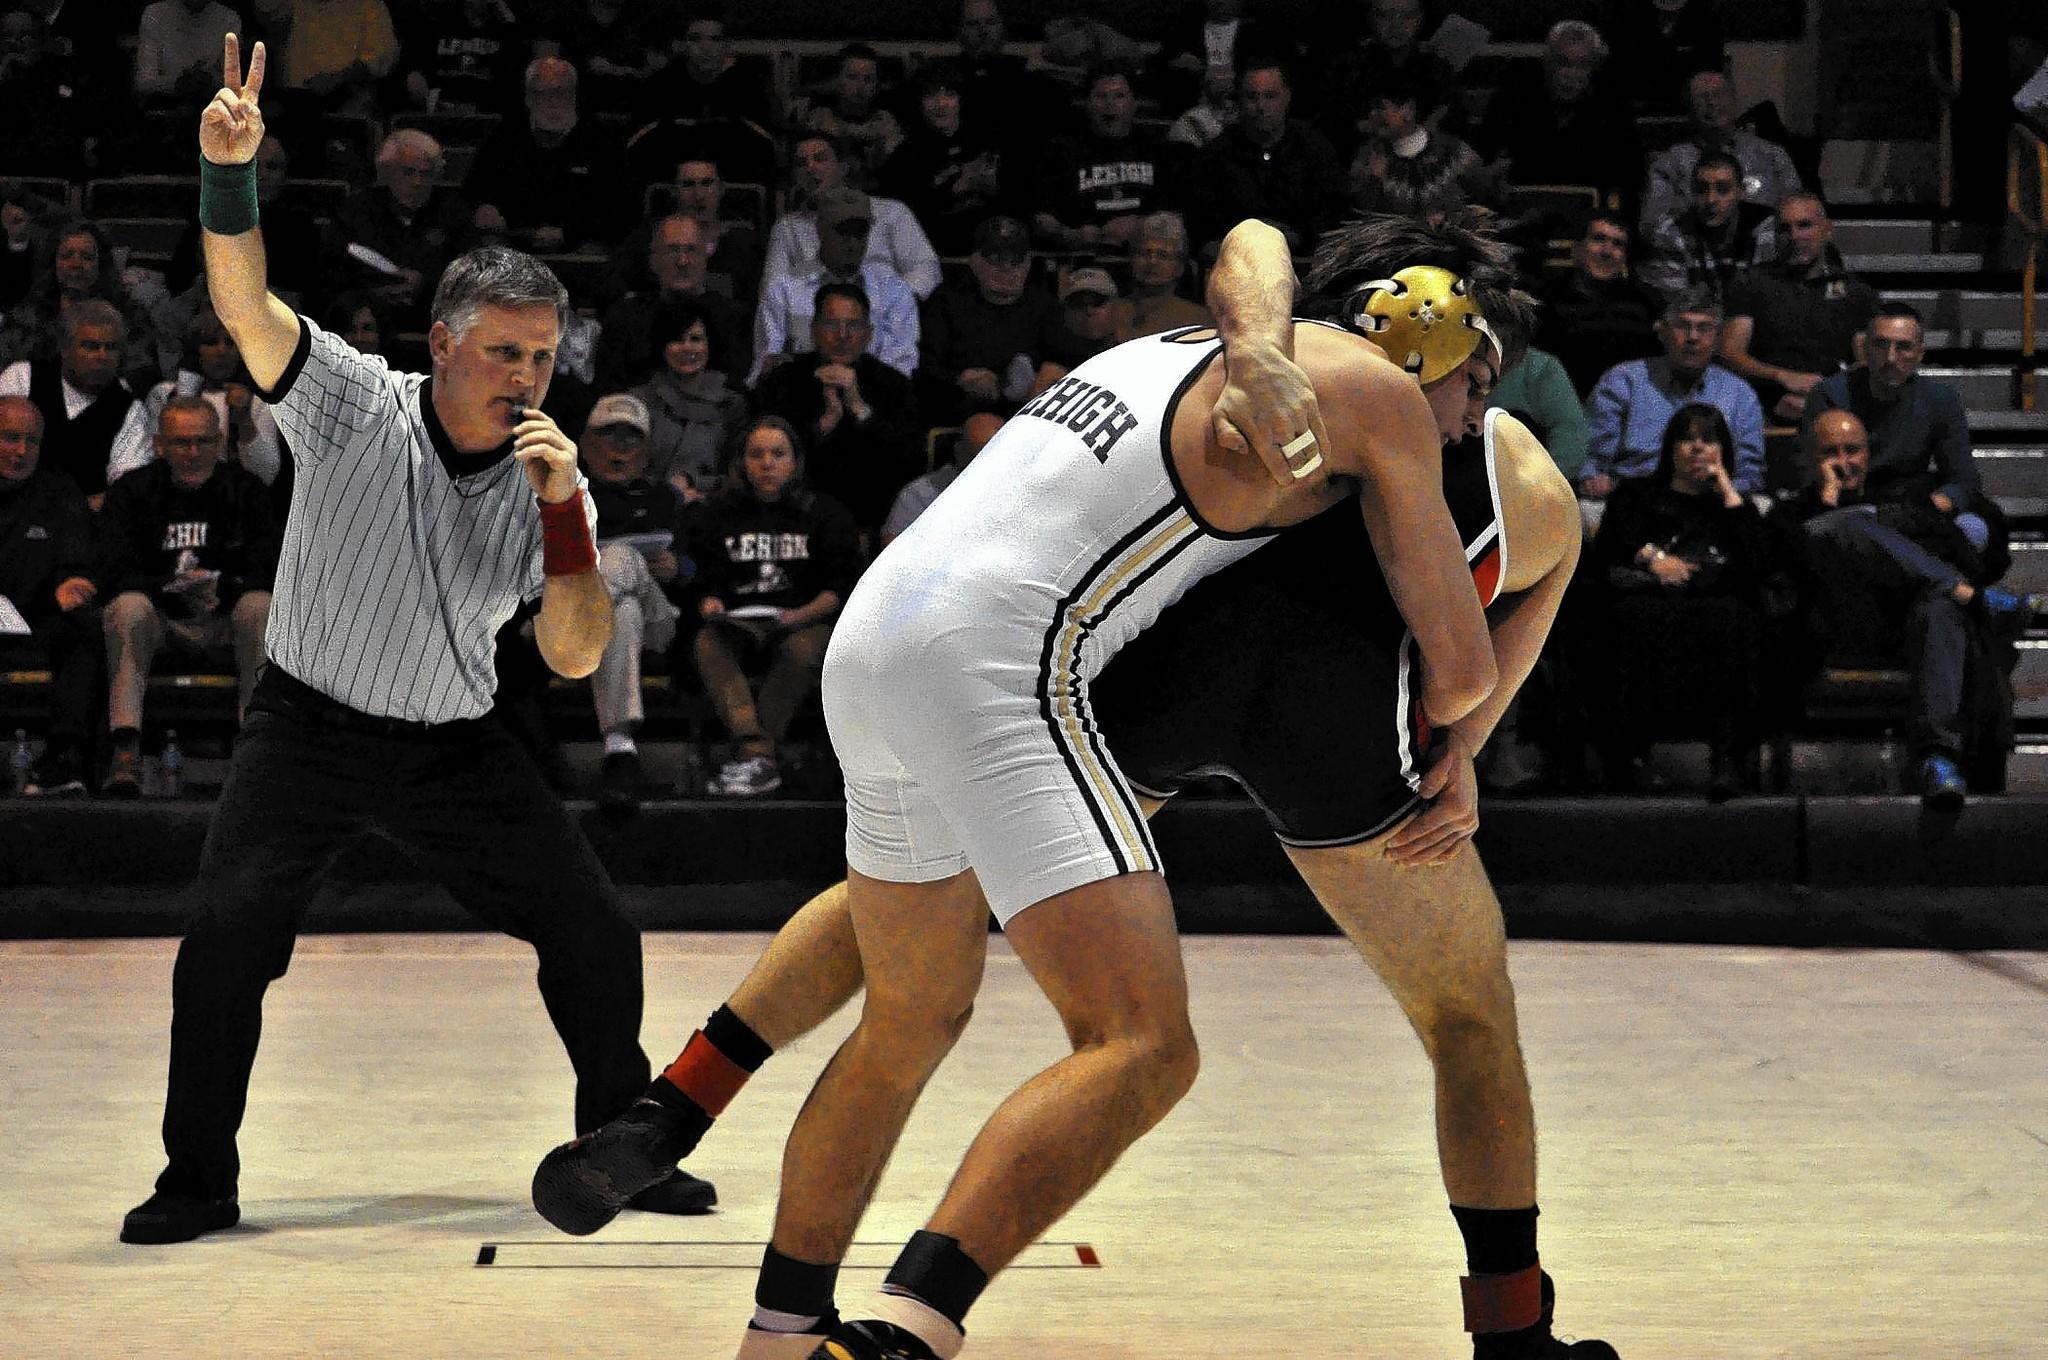 Lehigh's Ben Haas (left) wrestles Rutgers Saturday, February 8, 2014 at Grace Hall in Bethlehem. /(Ed. Note: SPORTS - JUSTIN LAFLEUR / LEHIGH UNIVERSITY ATHLETICS - Shot 02/08/14)